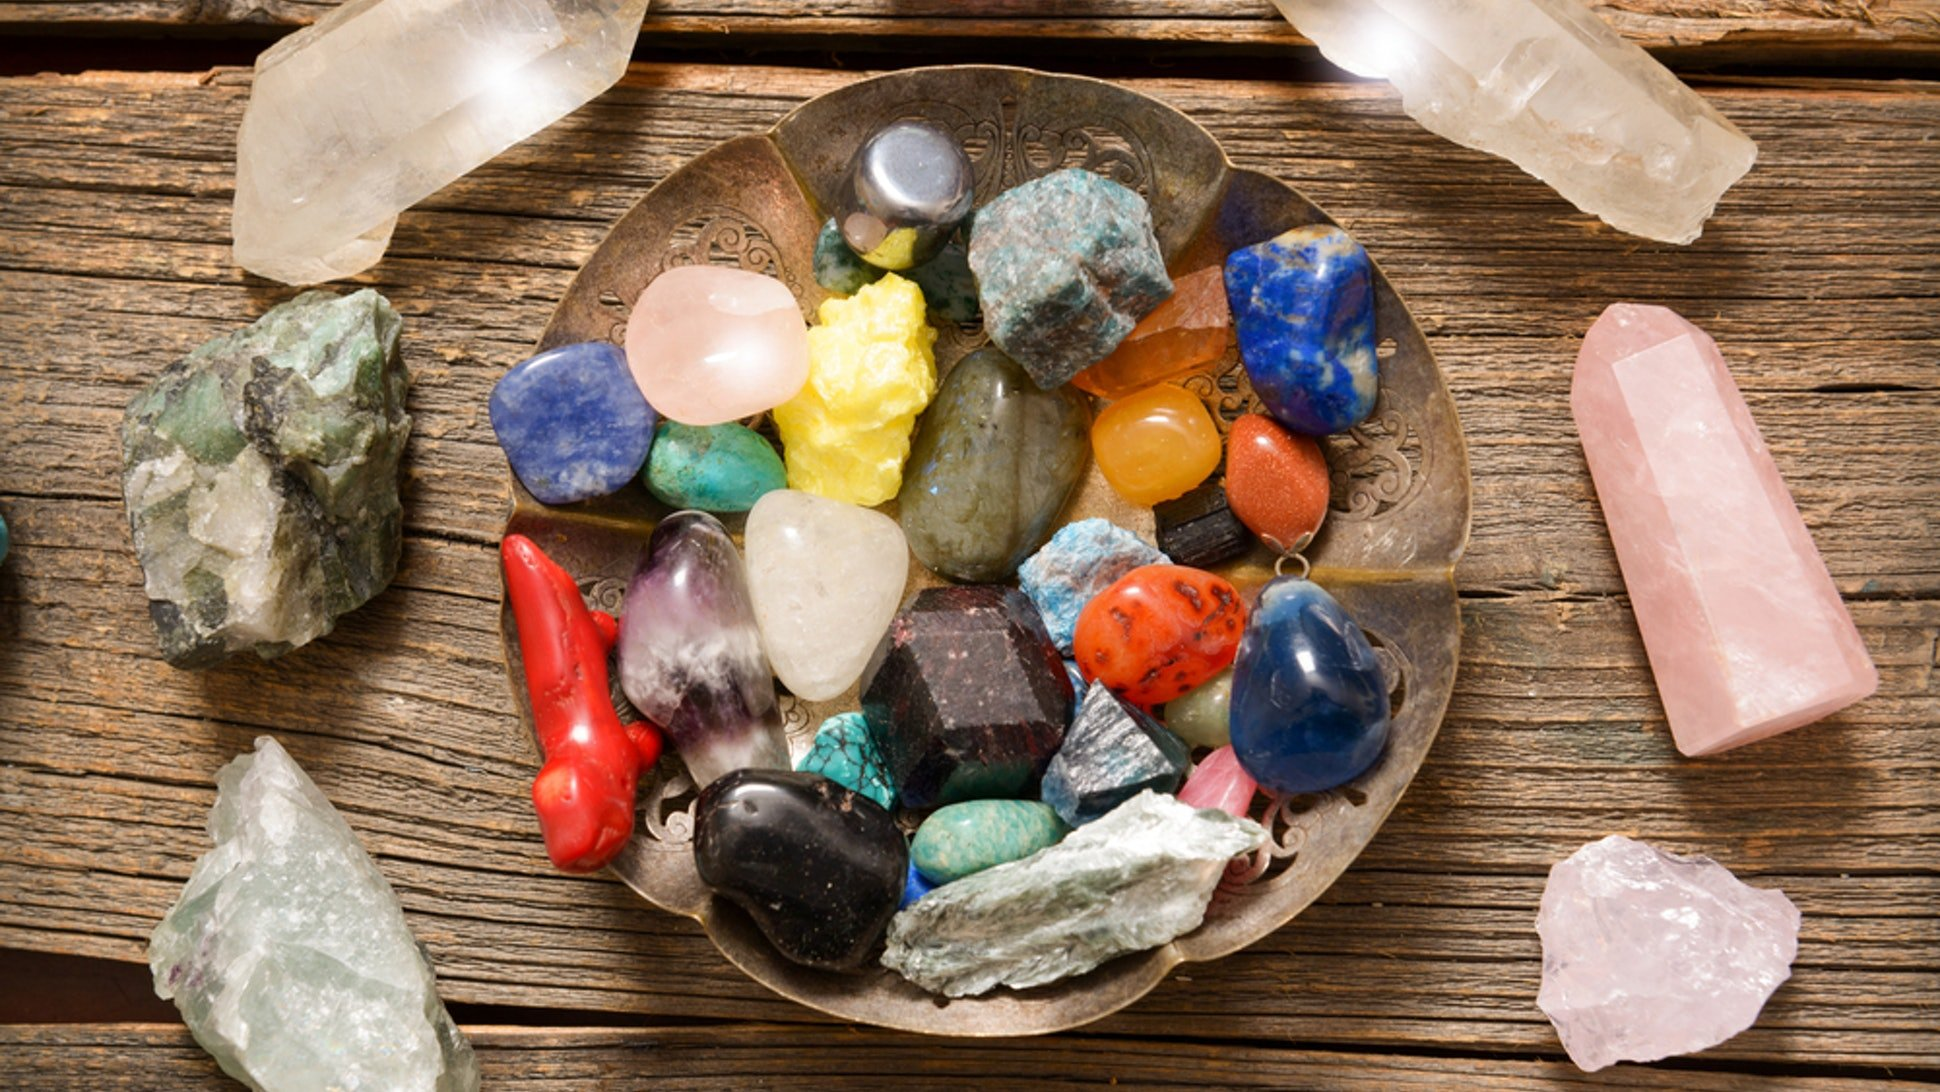 11 Unexpected Ways To Use Crystals For Healing — Instead Of Just For Decoration